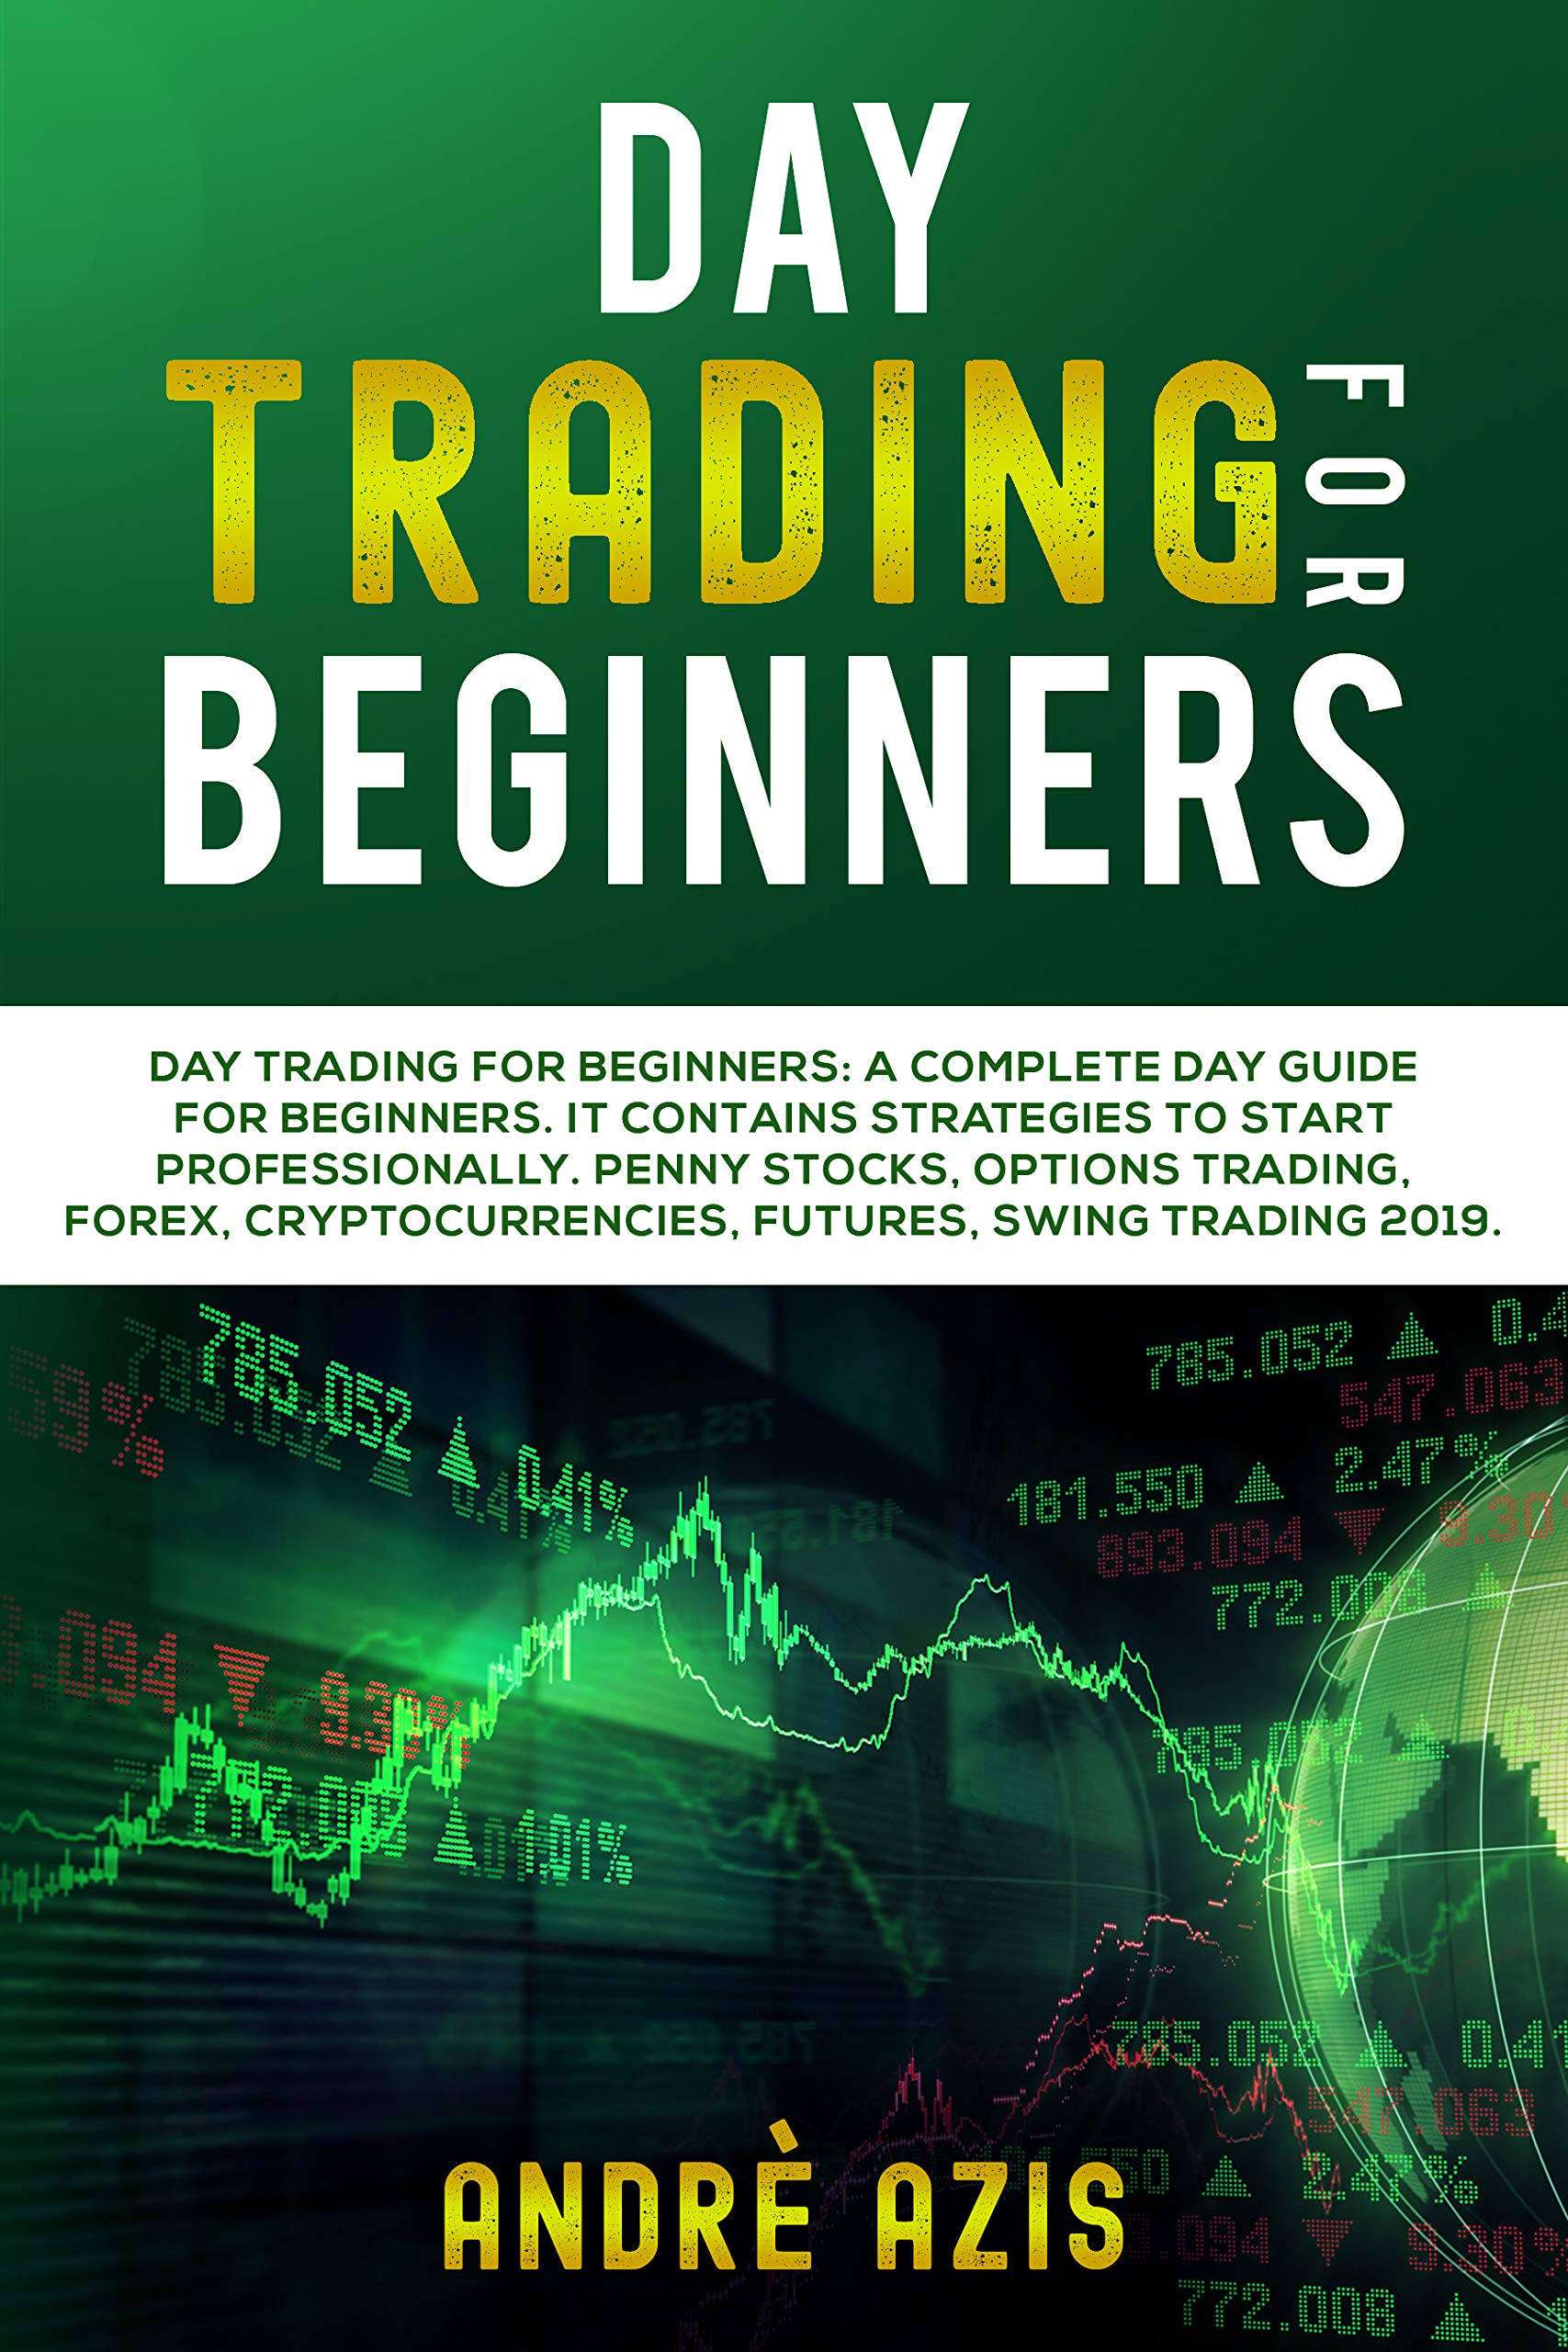 Day Trading For Beginners: A complete day trade guide for beginners. It contains Strategies to start professionally. Penny Stocks, Options Trading Forex Criprocurrencies, Futures, Swing Trading 2019